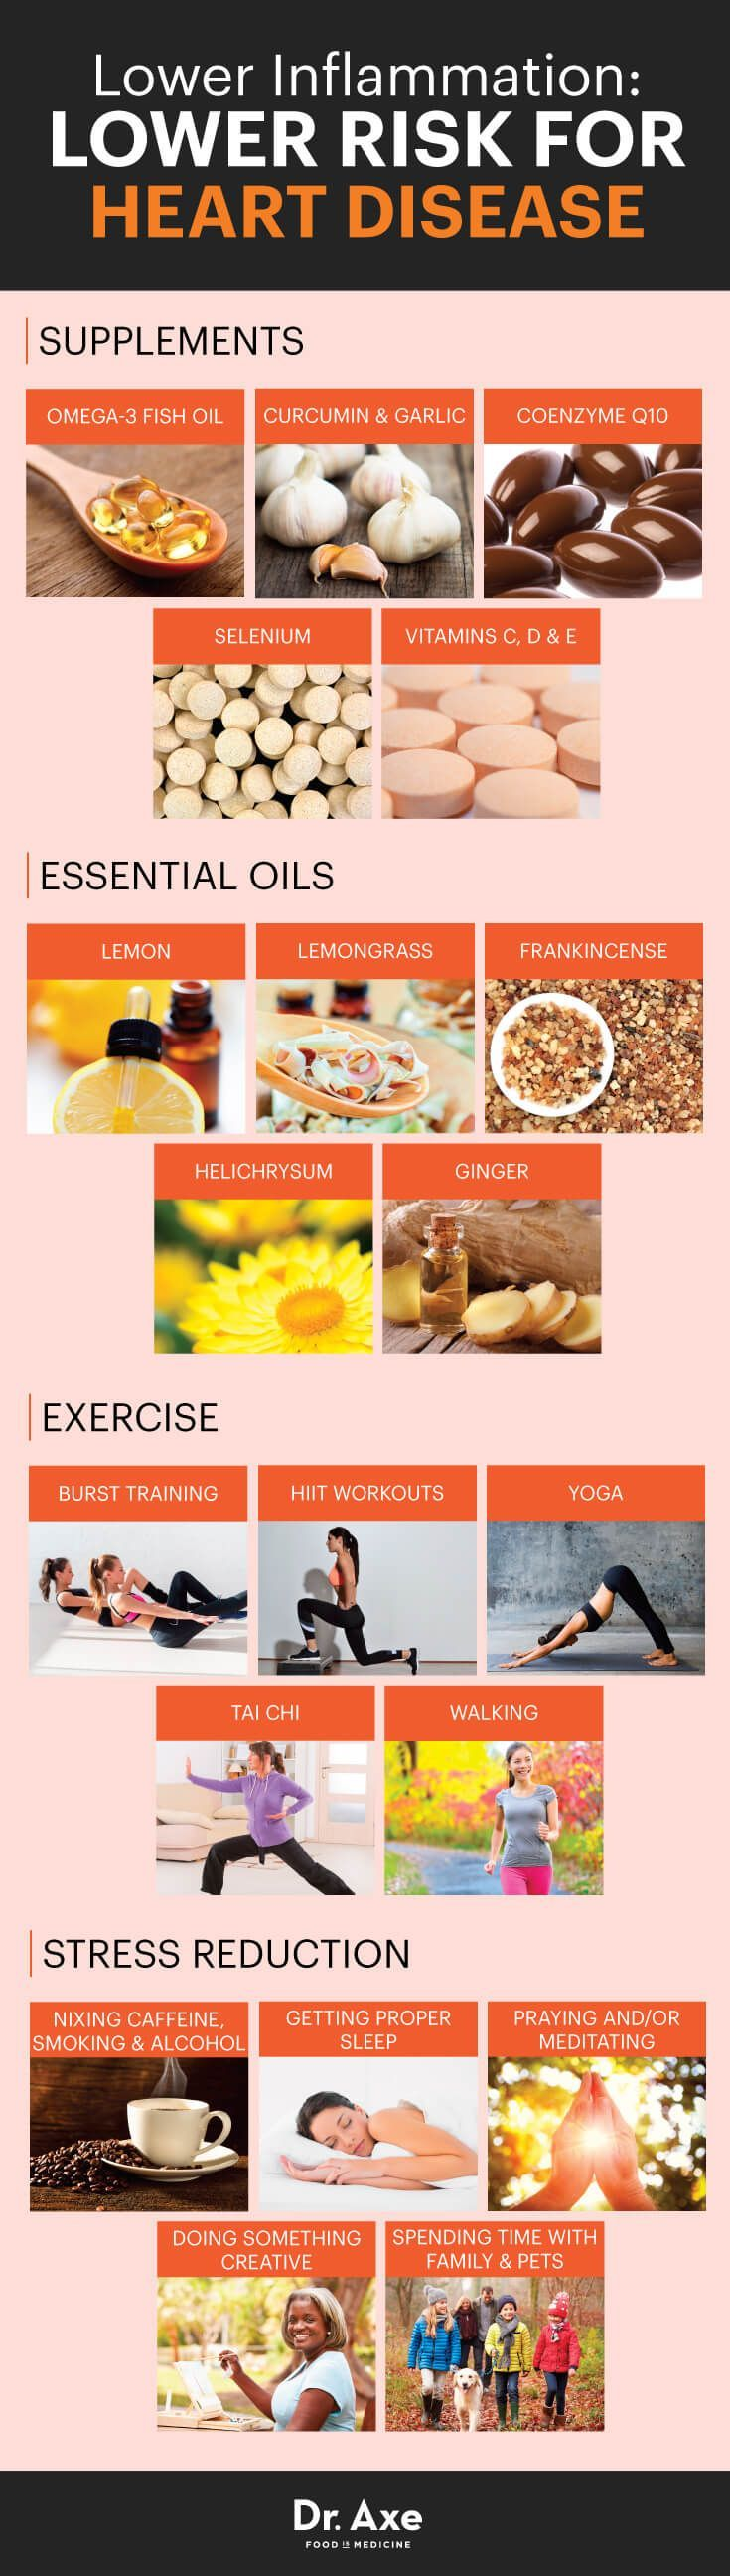 9 best heart health images on pinterest health healthy for Healthwise fish oil